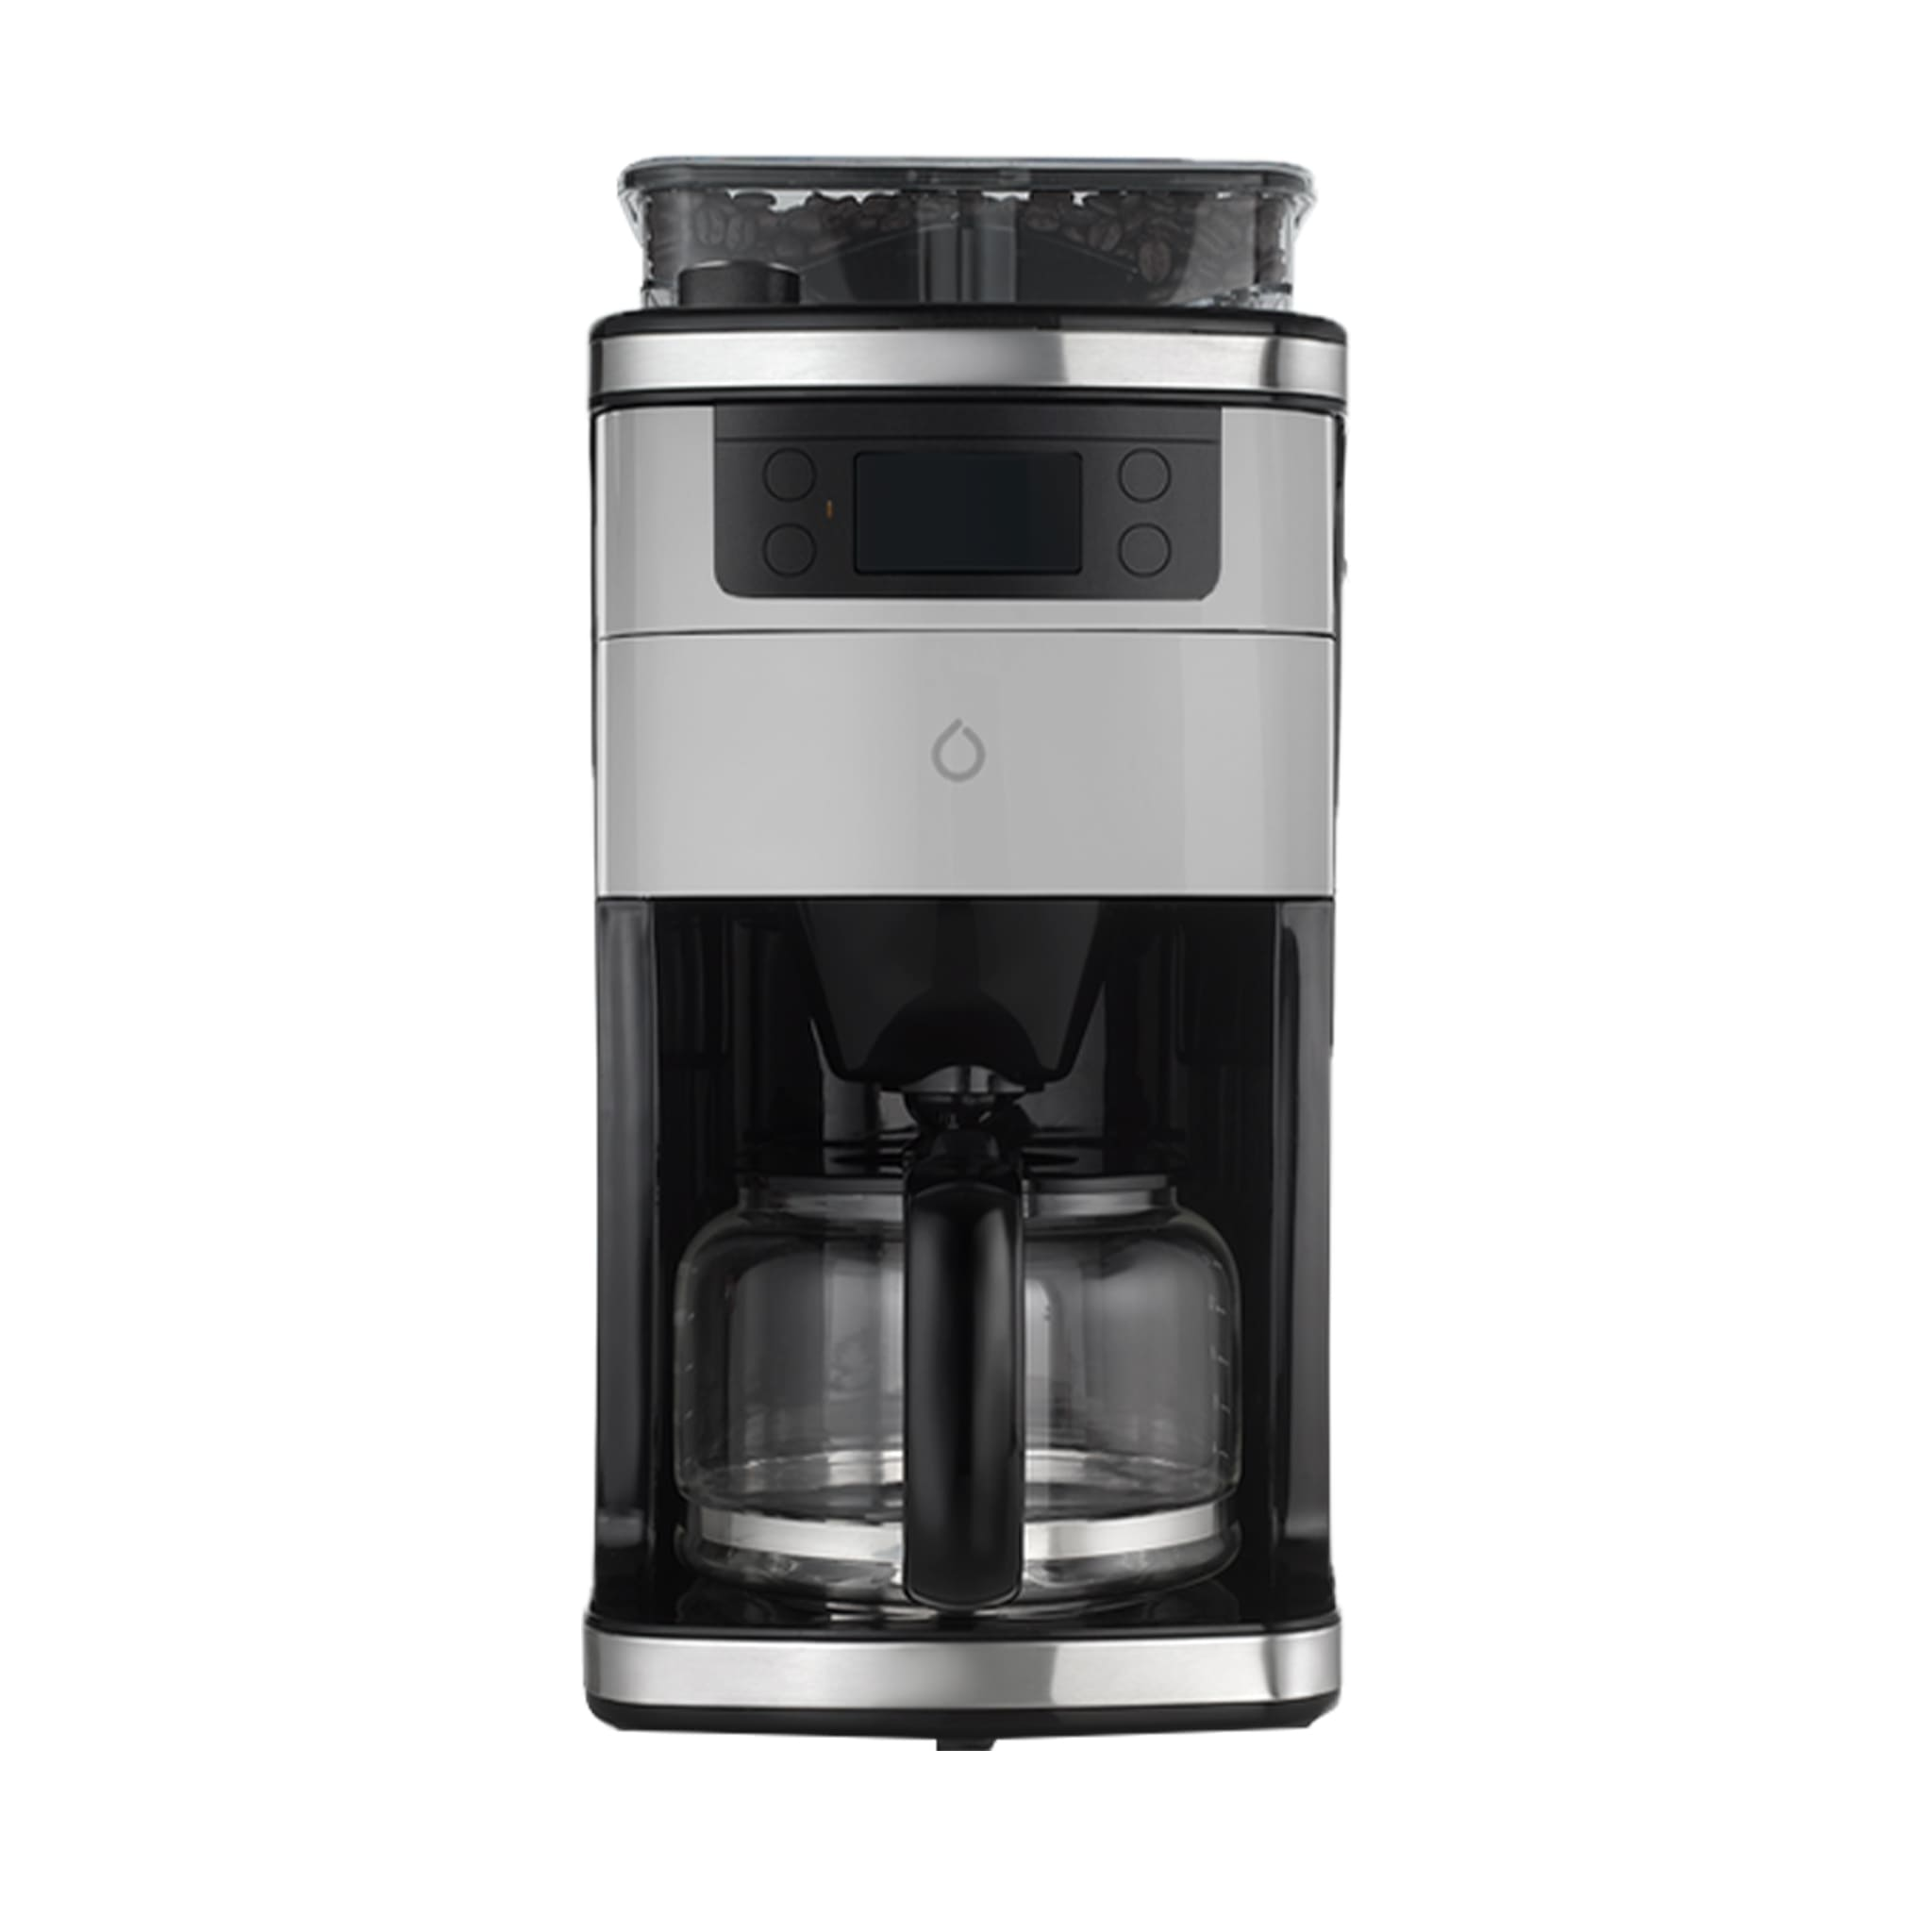 Smarter Coffee Machine   make your coffee with your voice or schedule coffee to be brewed at the same time each day   Sparkwell Home, Home Office, Home Comforts